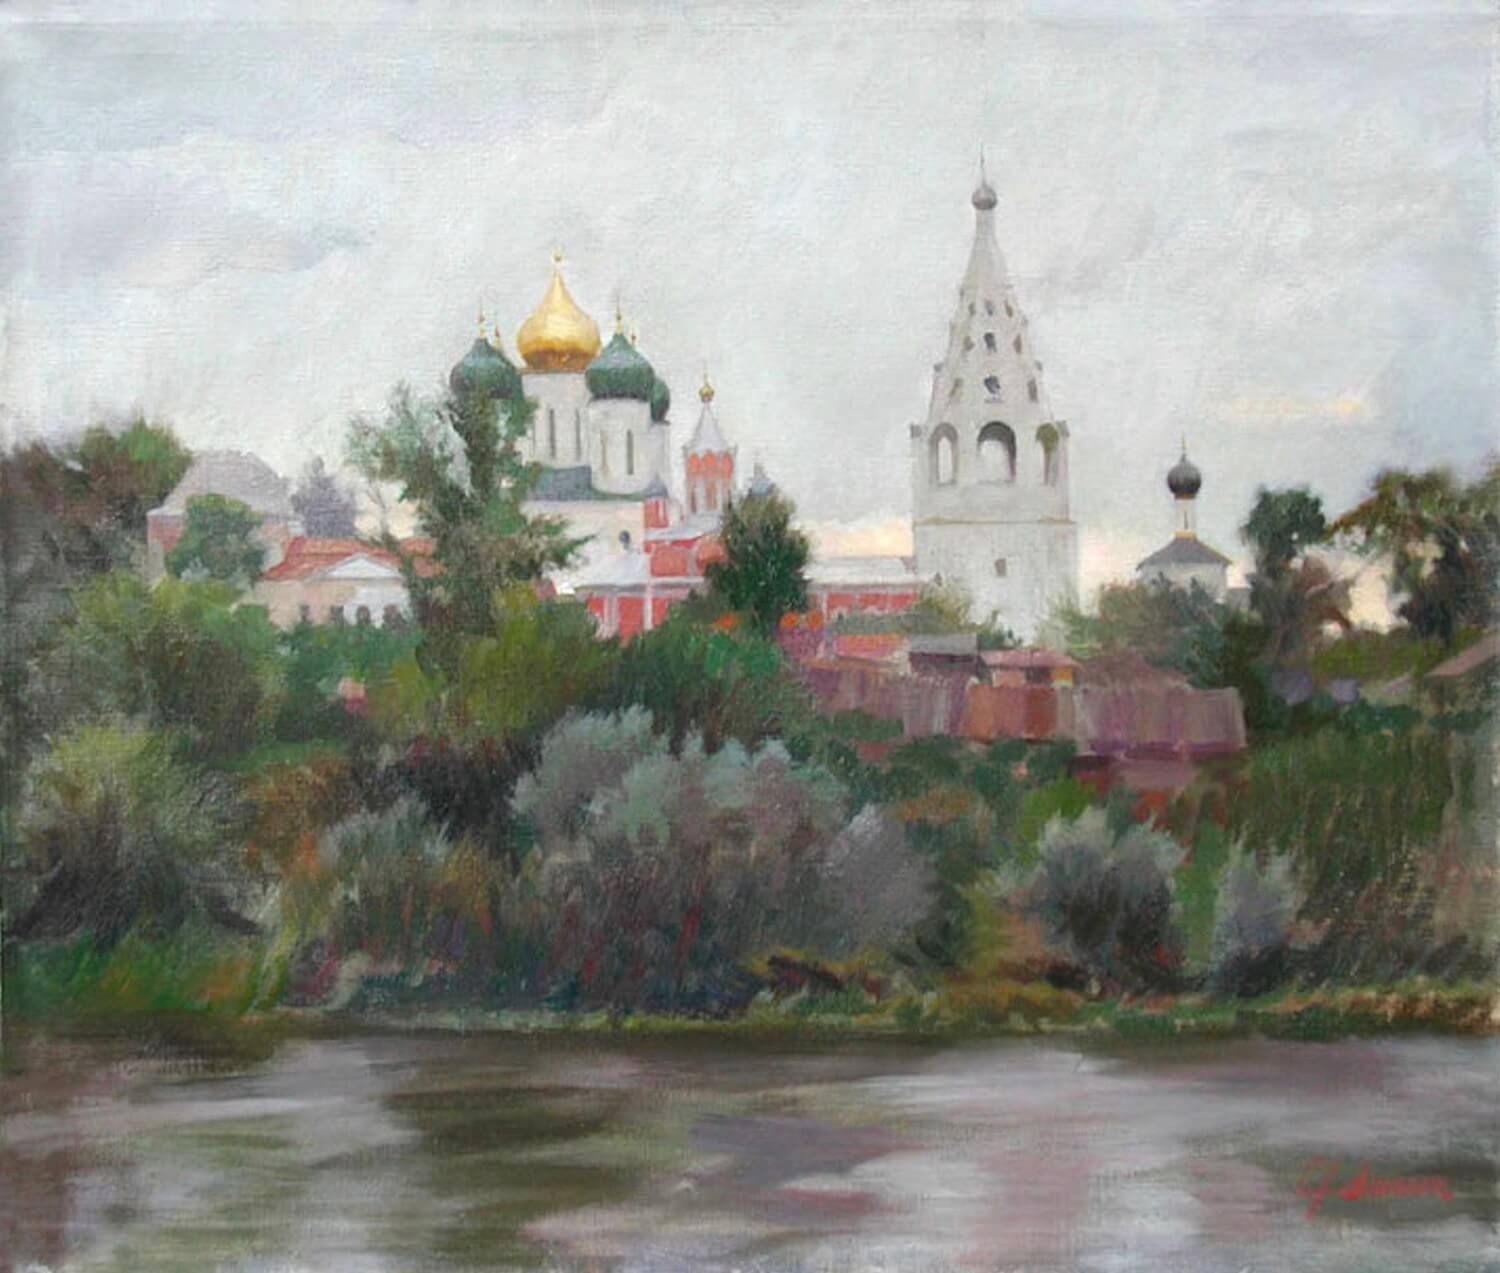 "Kolomna on the Moskva River, Russia , 17"" x 20"", oil on linen canvas, SOLD, private collection"